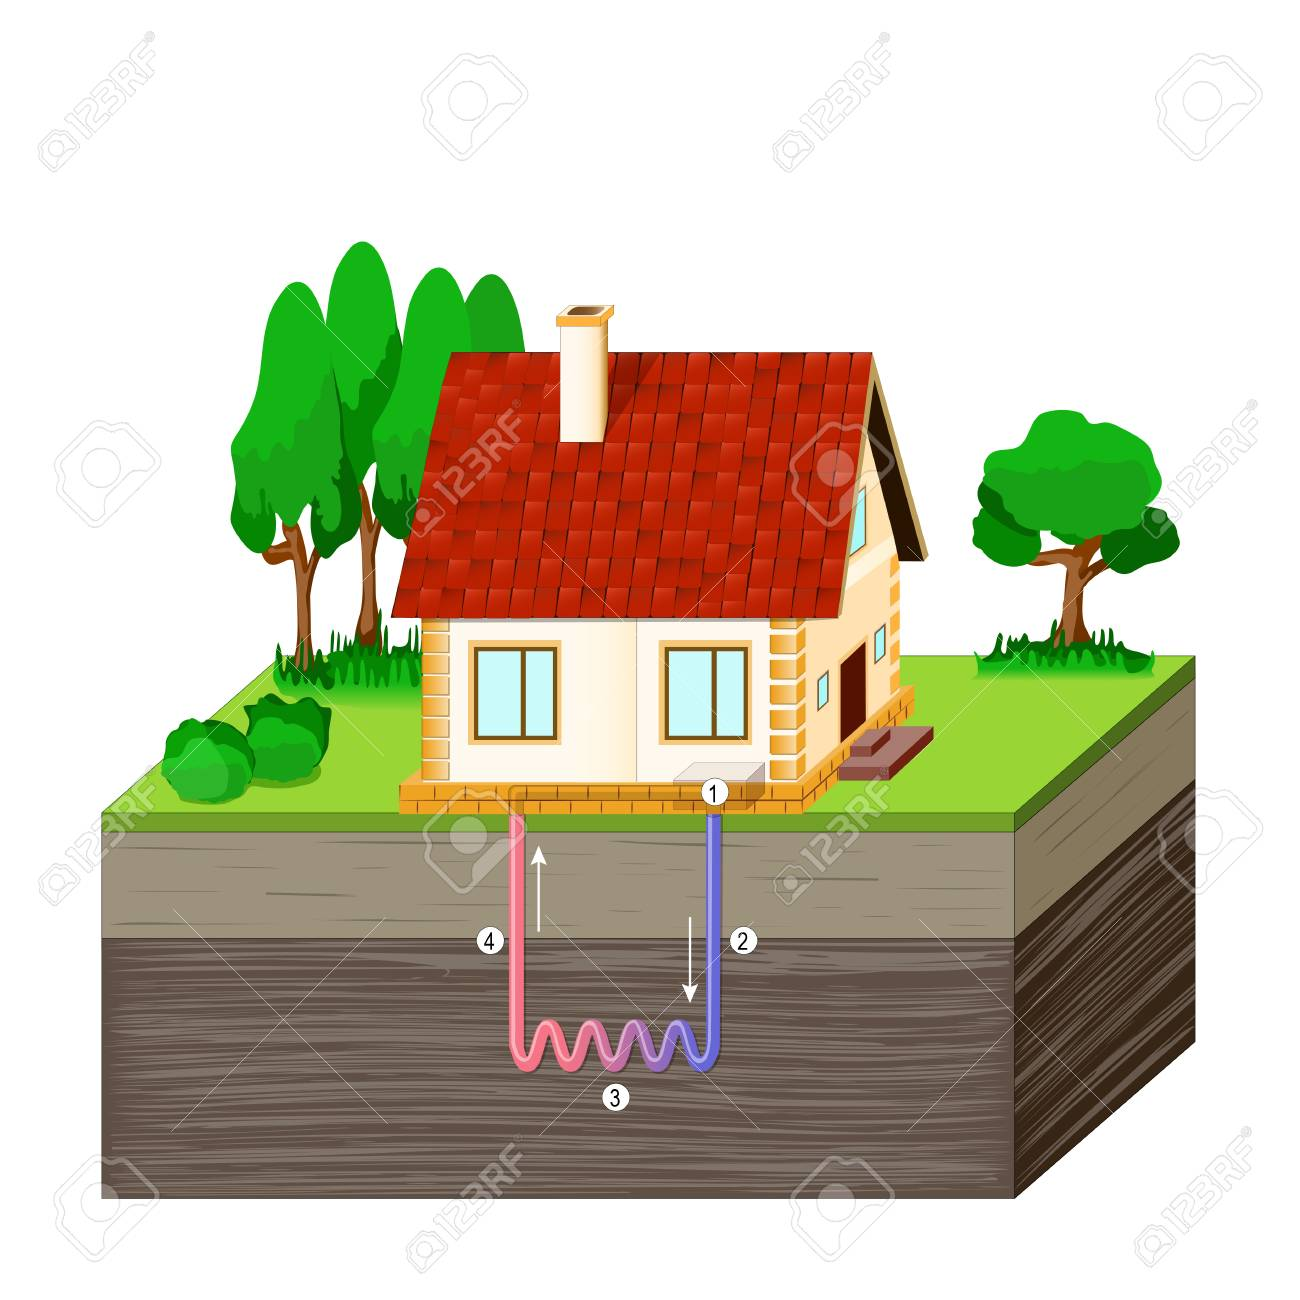 hight resolution of diagram of a house receiving geothermal energy heat pump or home geothermal energy diagram